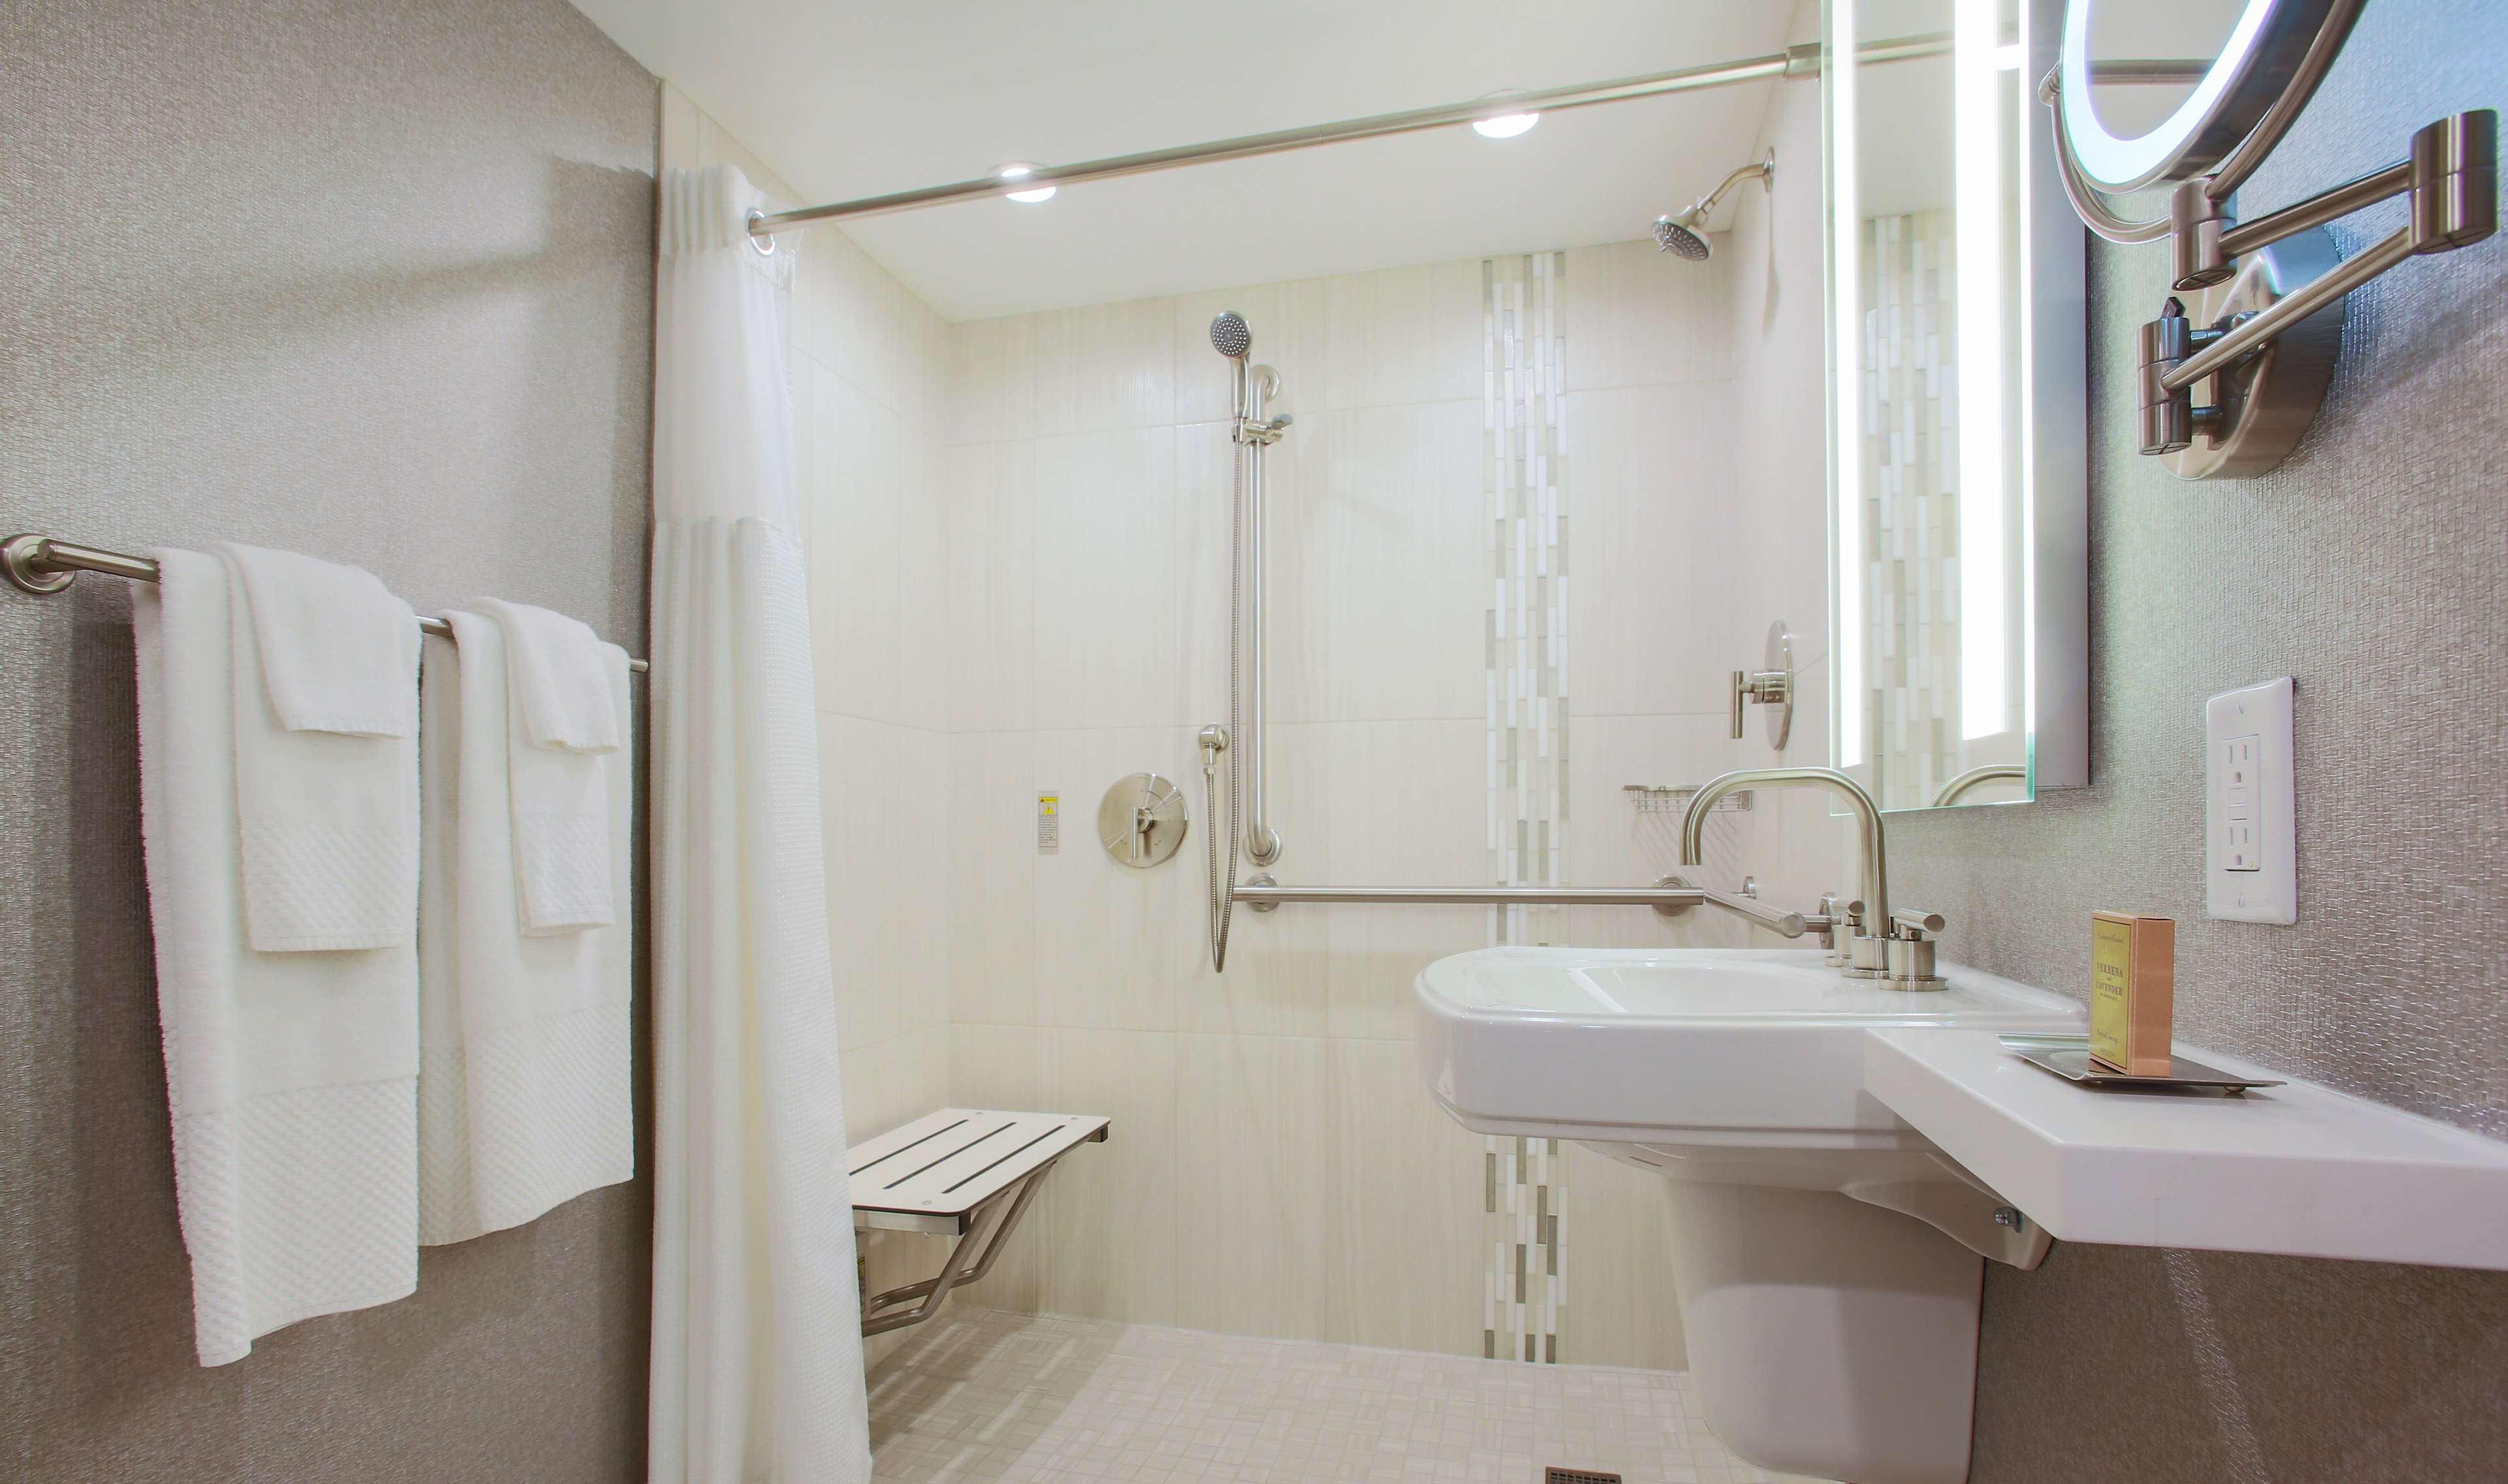 DoubleTree by Hilton Hotel Chicago - Alsip image 9